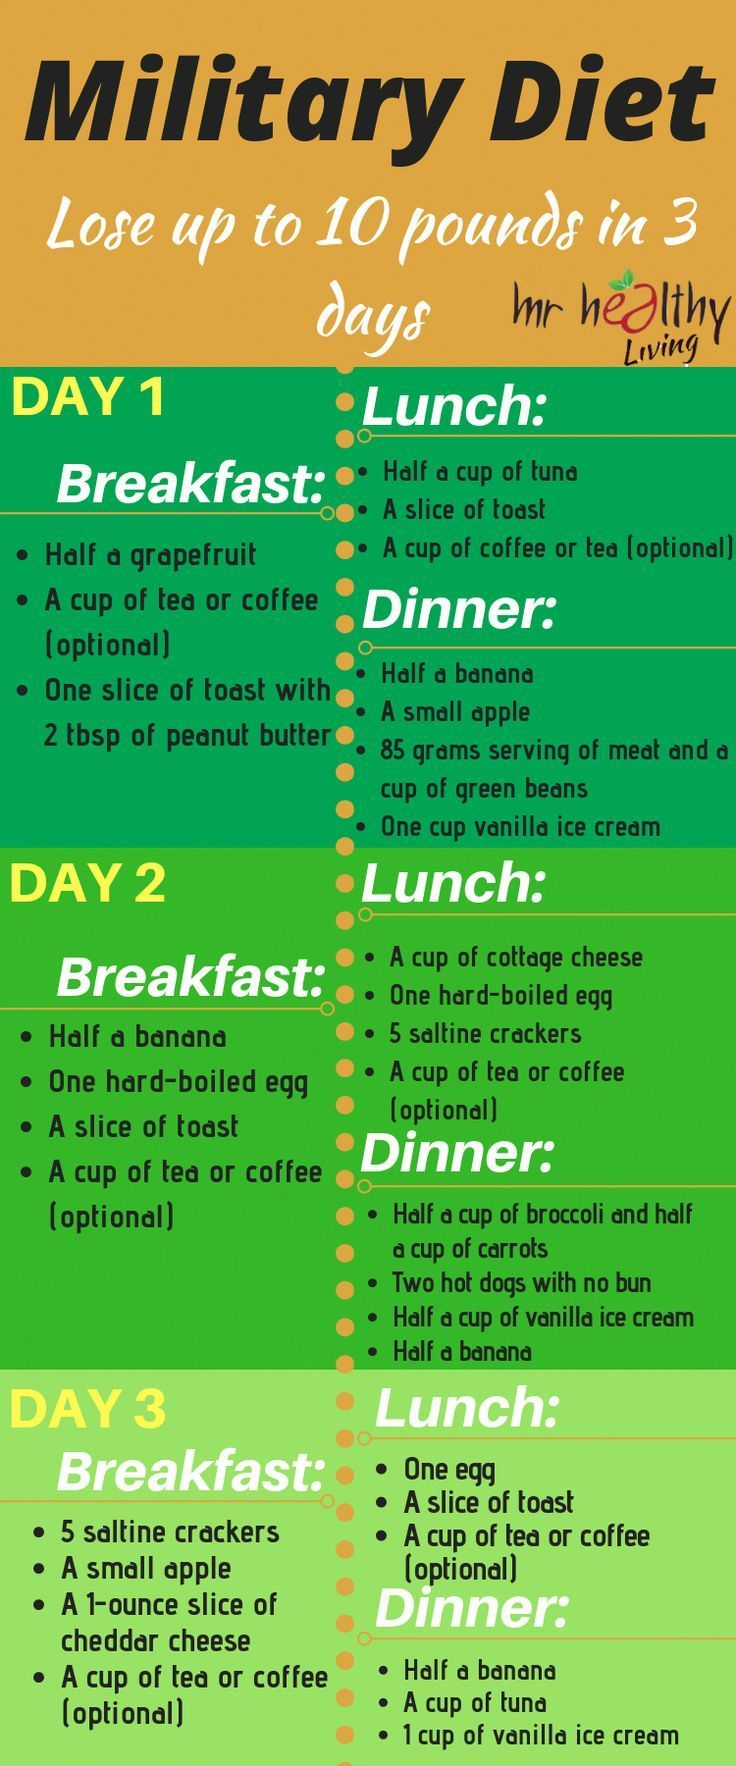 military diet  military diet before and after  military diet before and after  i... -   7 military diet Before And After ideas